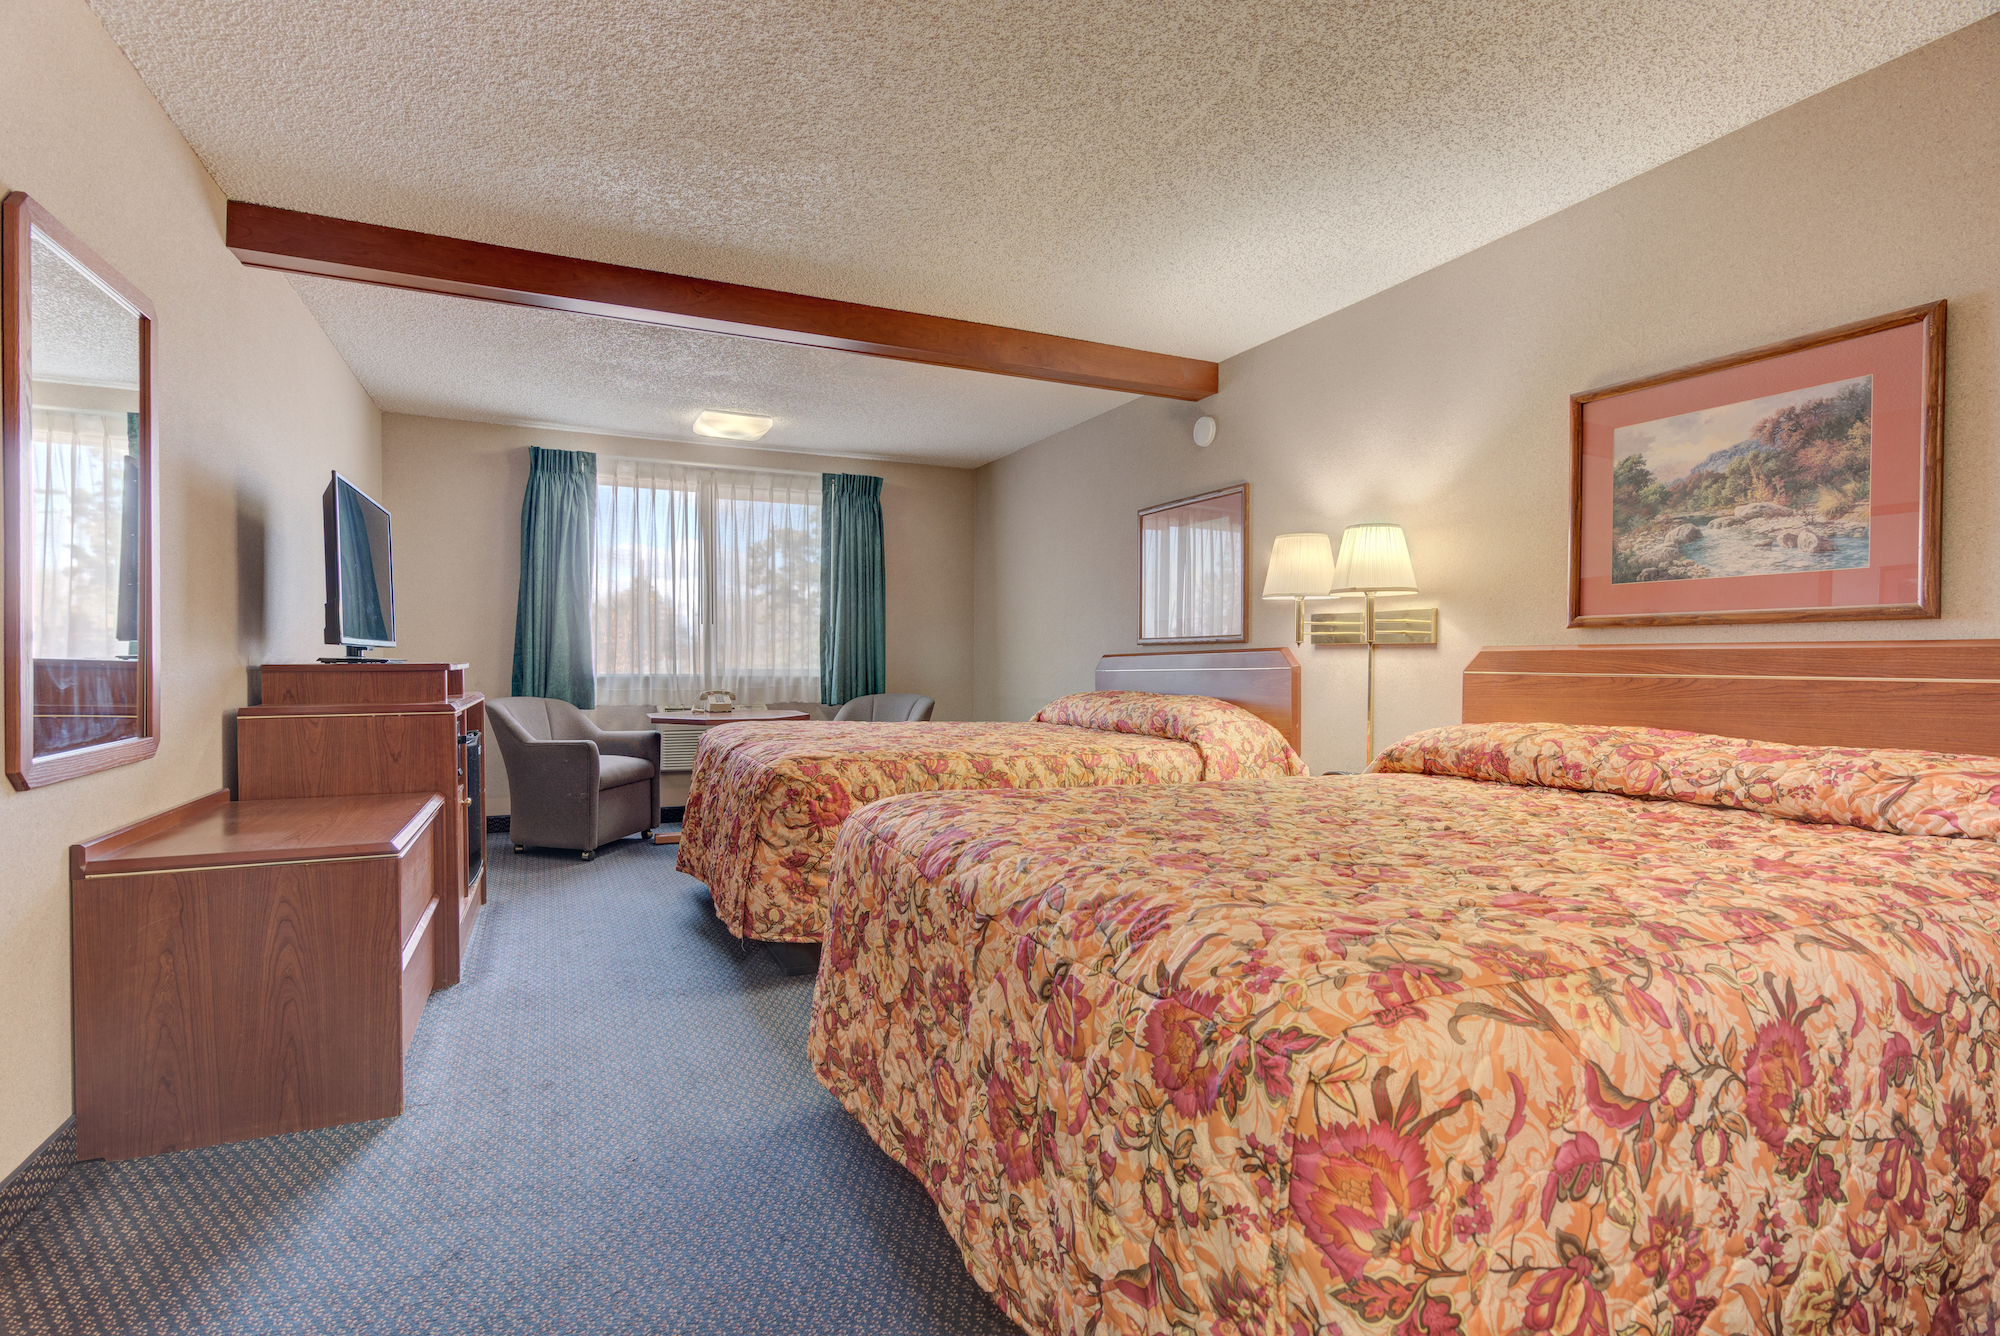 Redmond Inn Room Pics